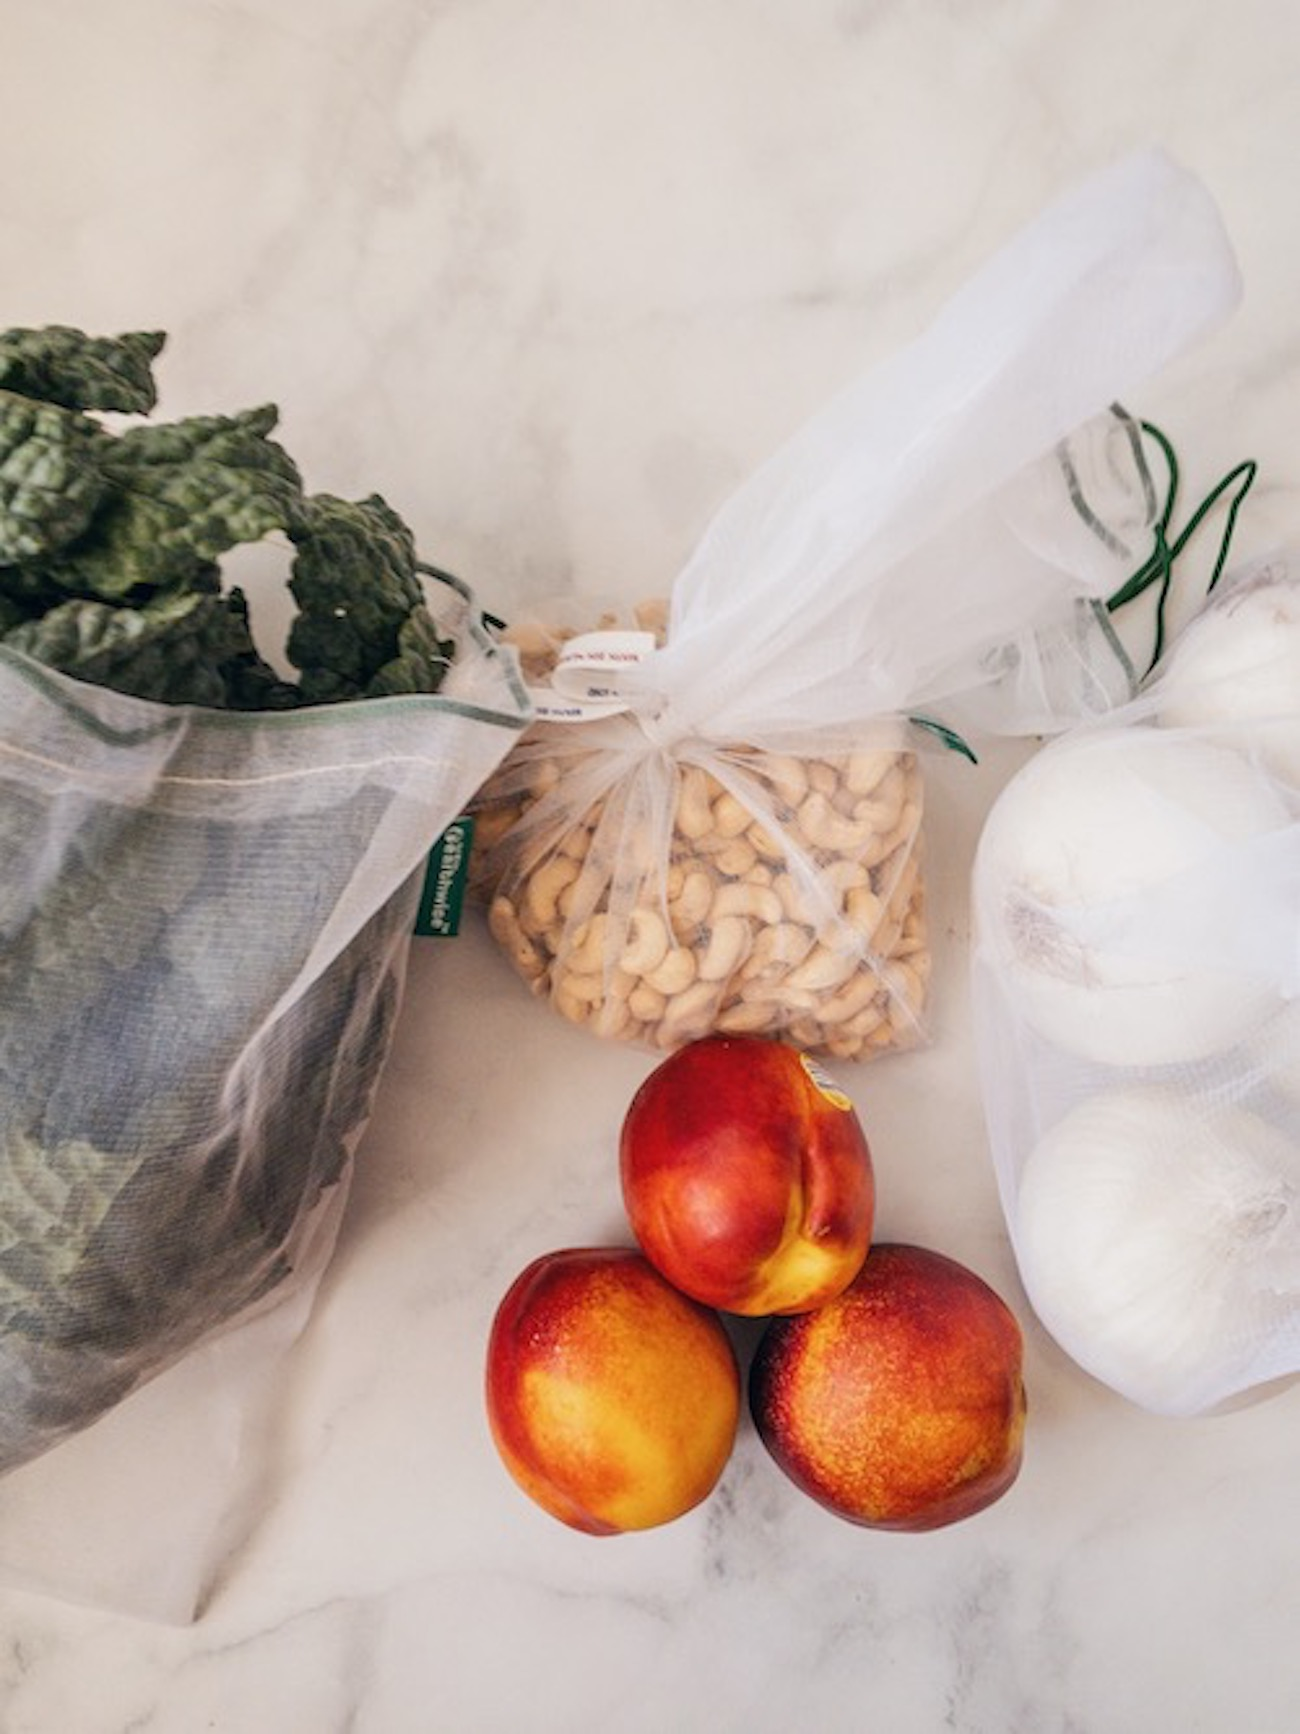 Produce in Eco-Friendly Bags